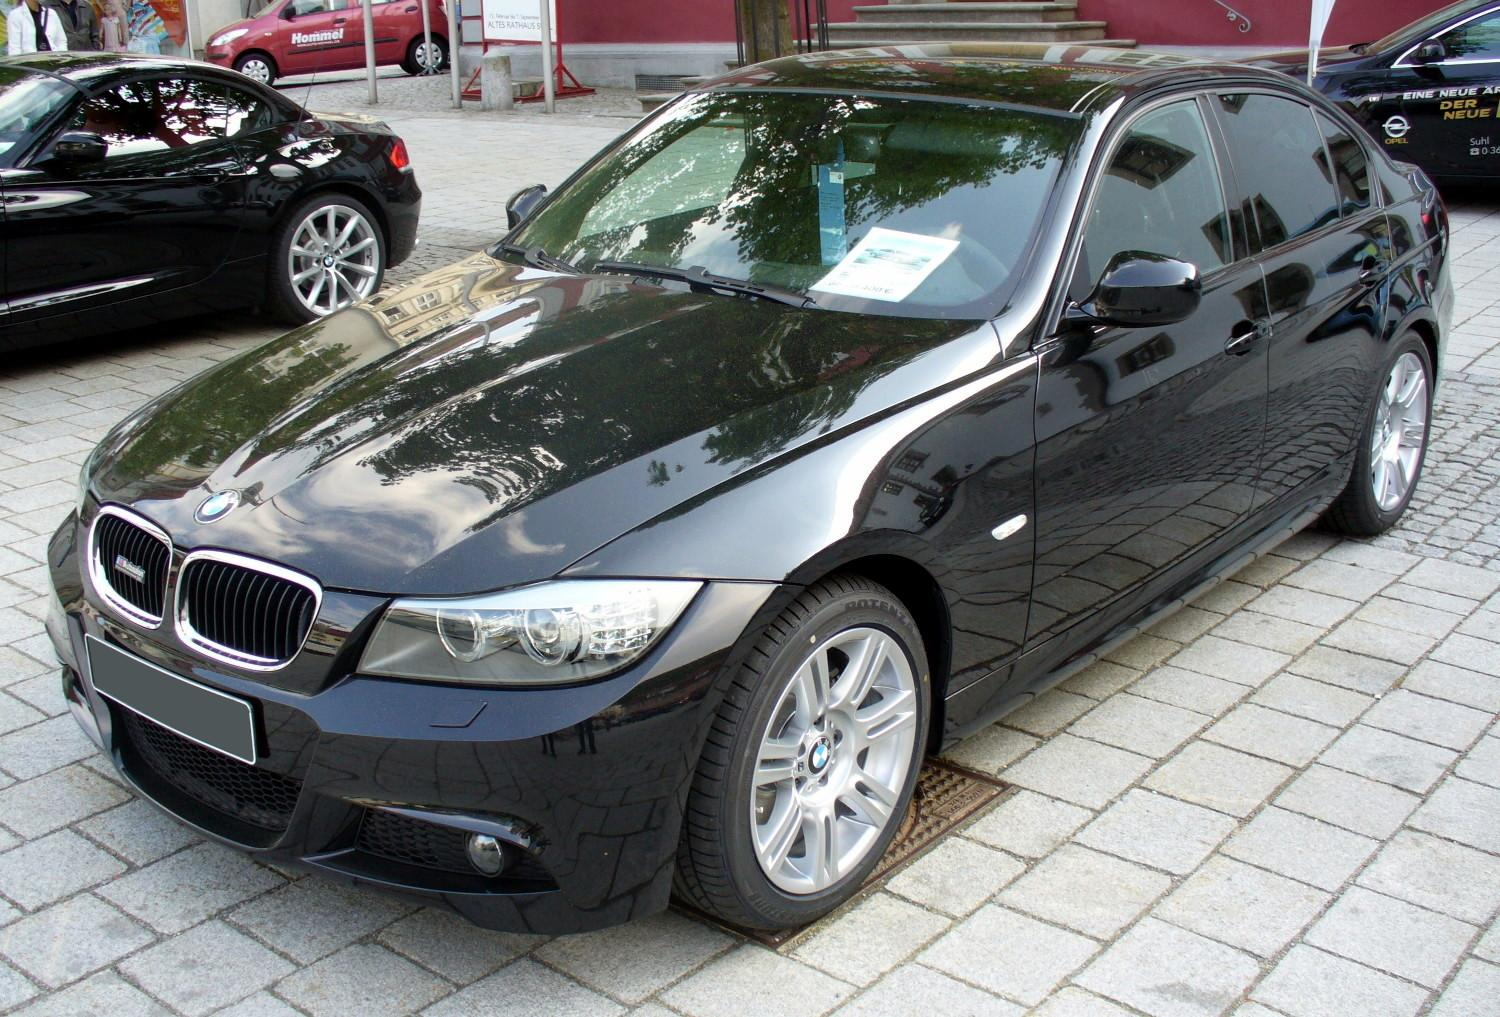 file bmw e90 320d m sport facelift jpg wikimedia commons. Black Bedroom Furniture Sets. Home Design Ideas